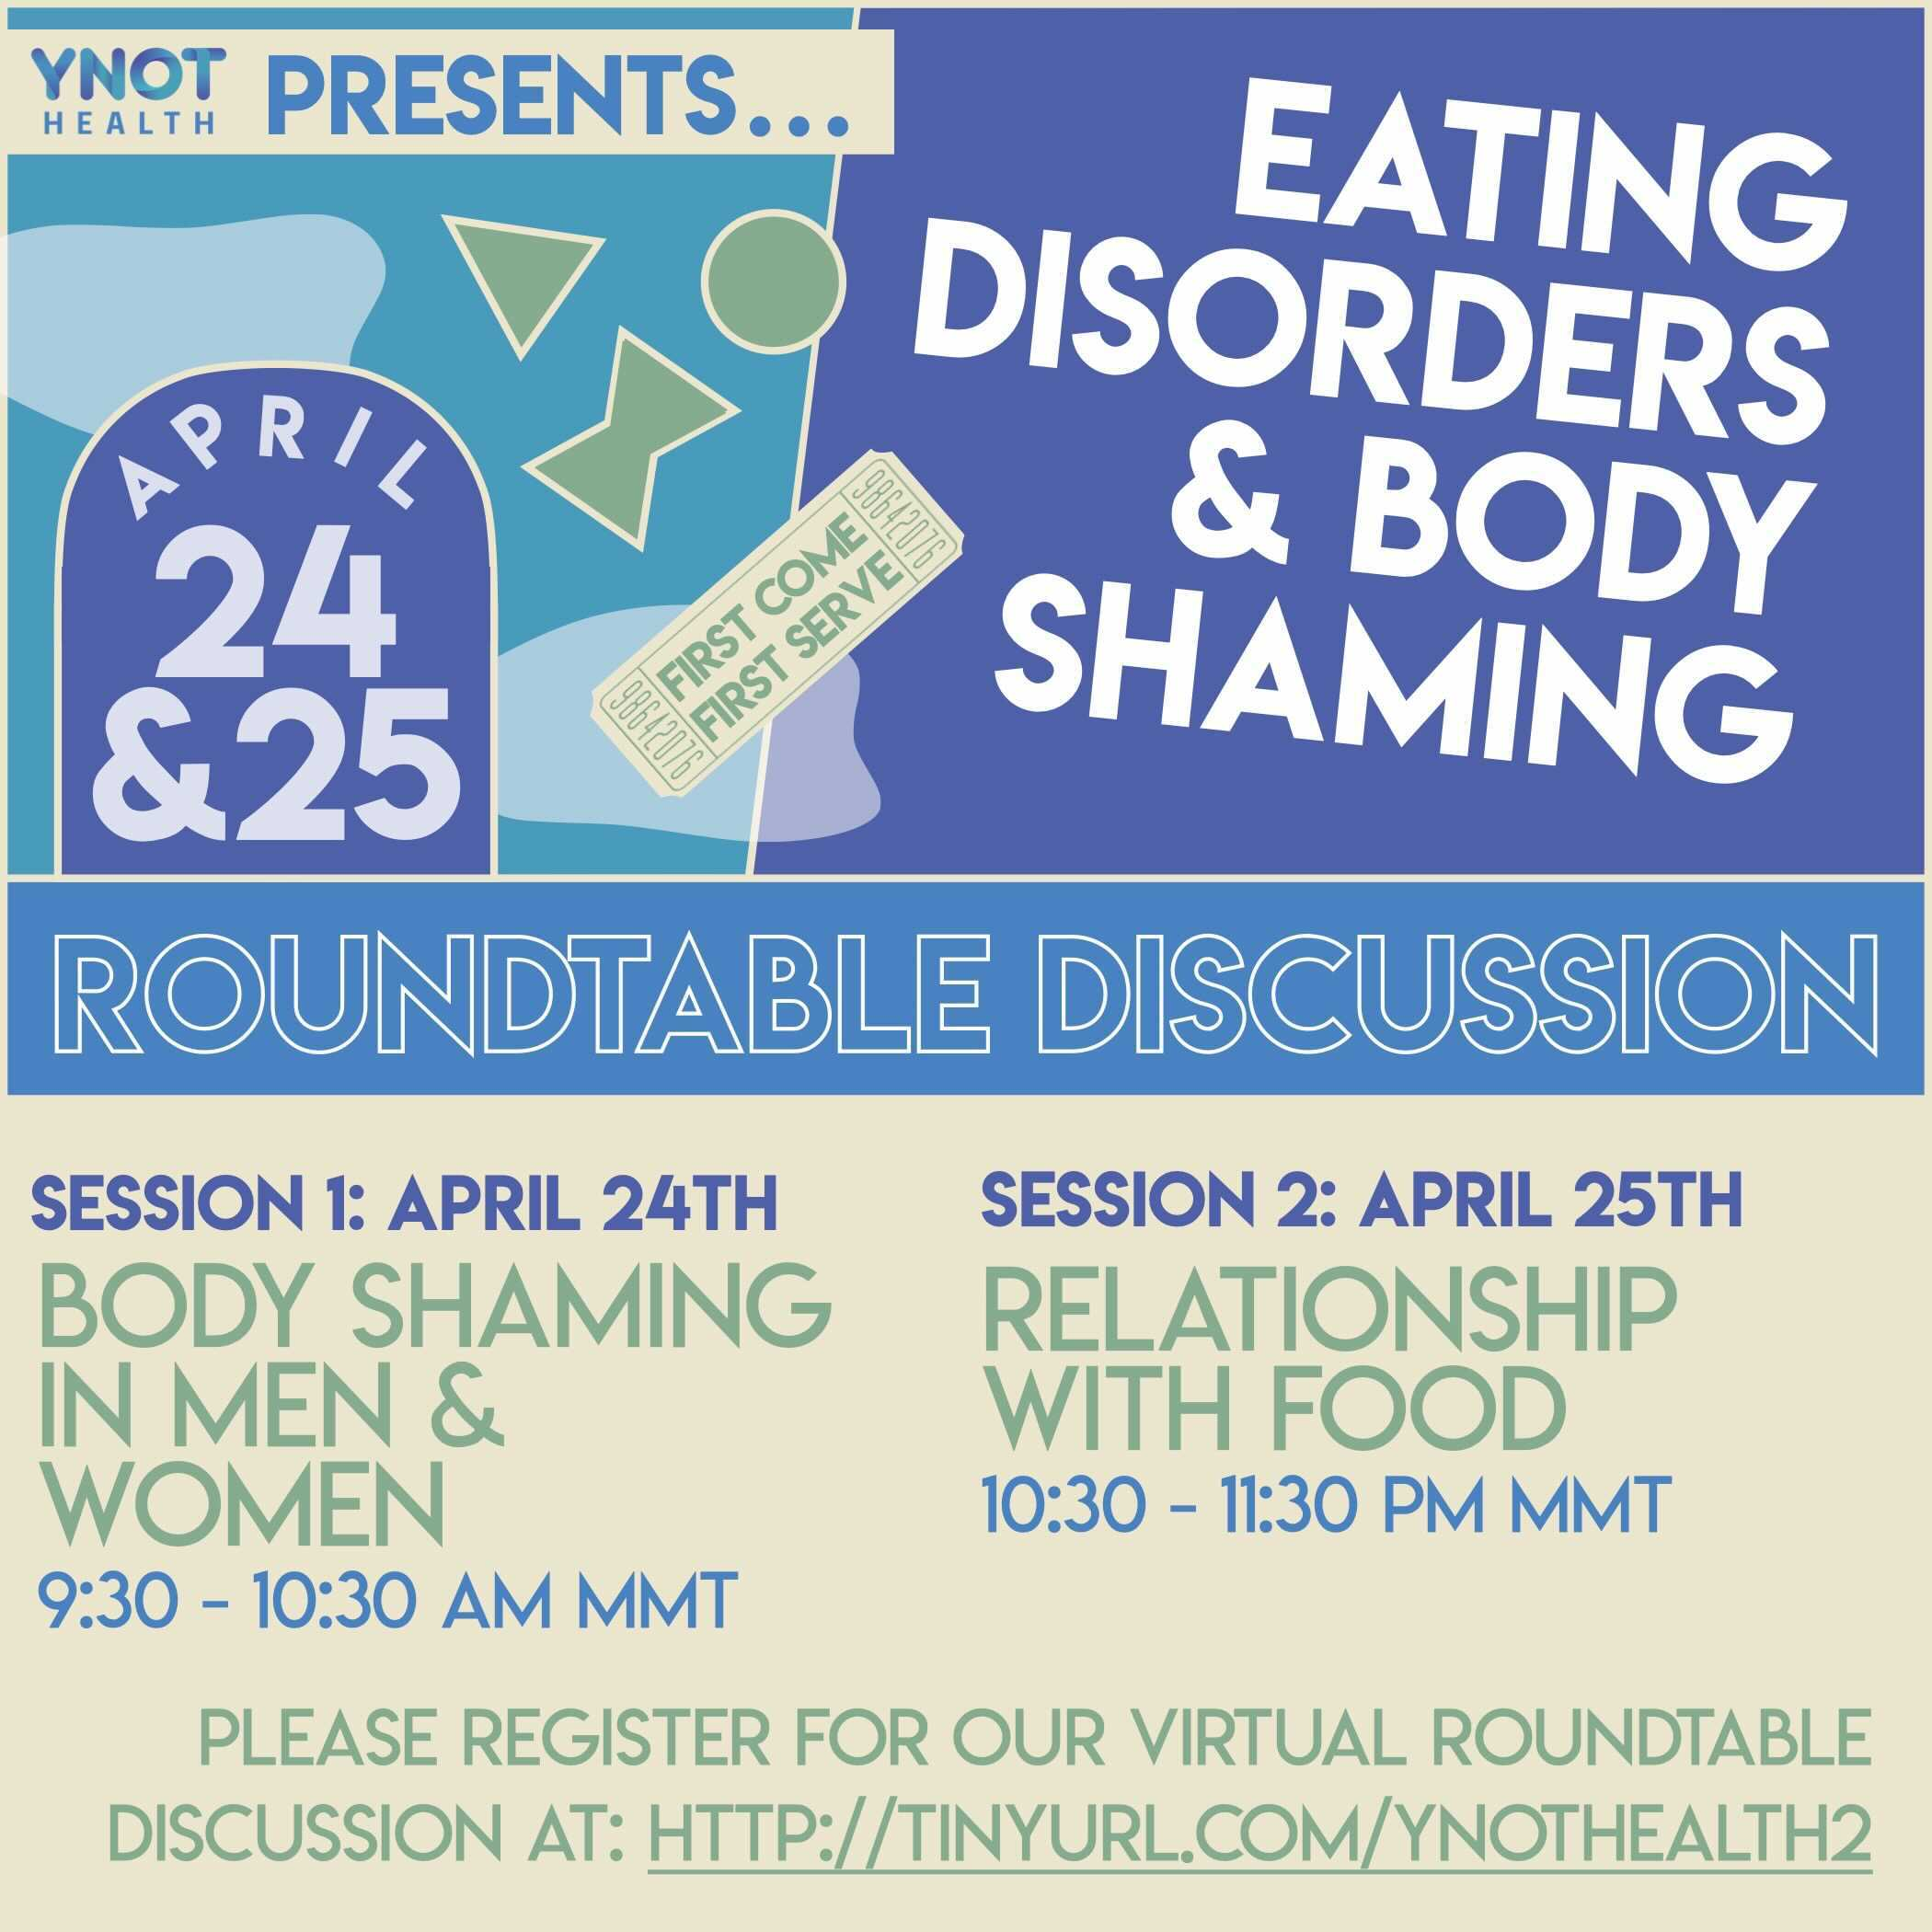 Roundtable Discussions: Eating Disorders & Body Shaming